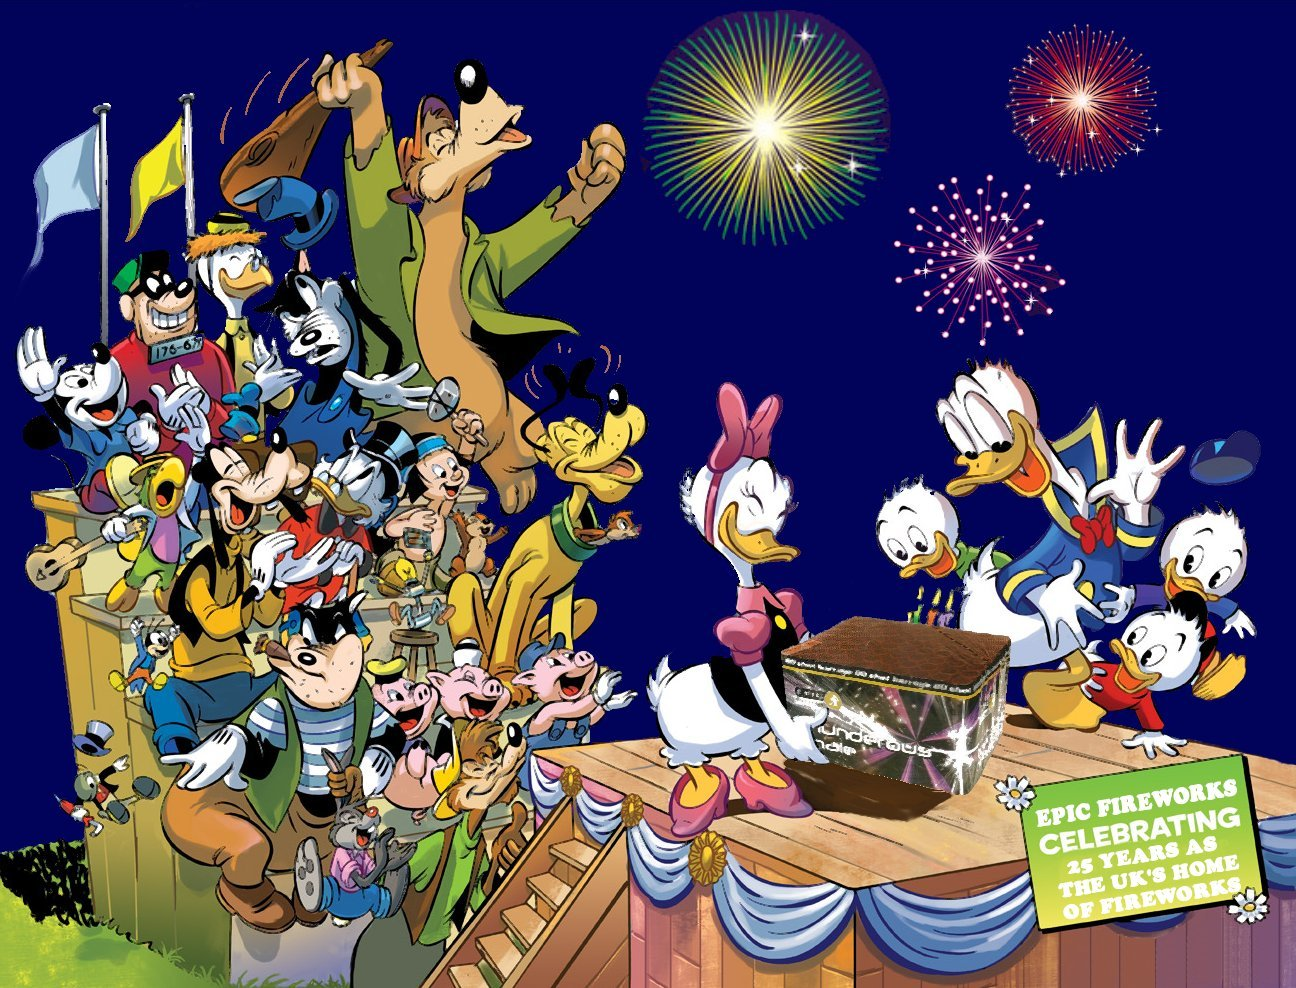 Disney Characters Advertising Fireworks